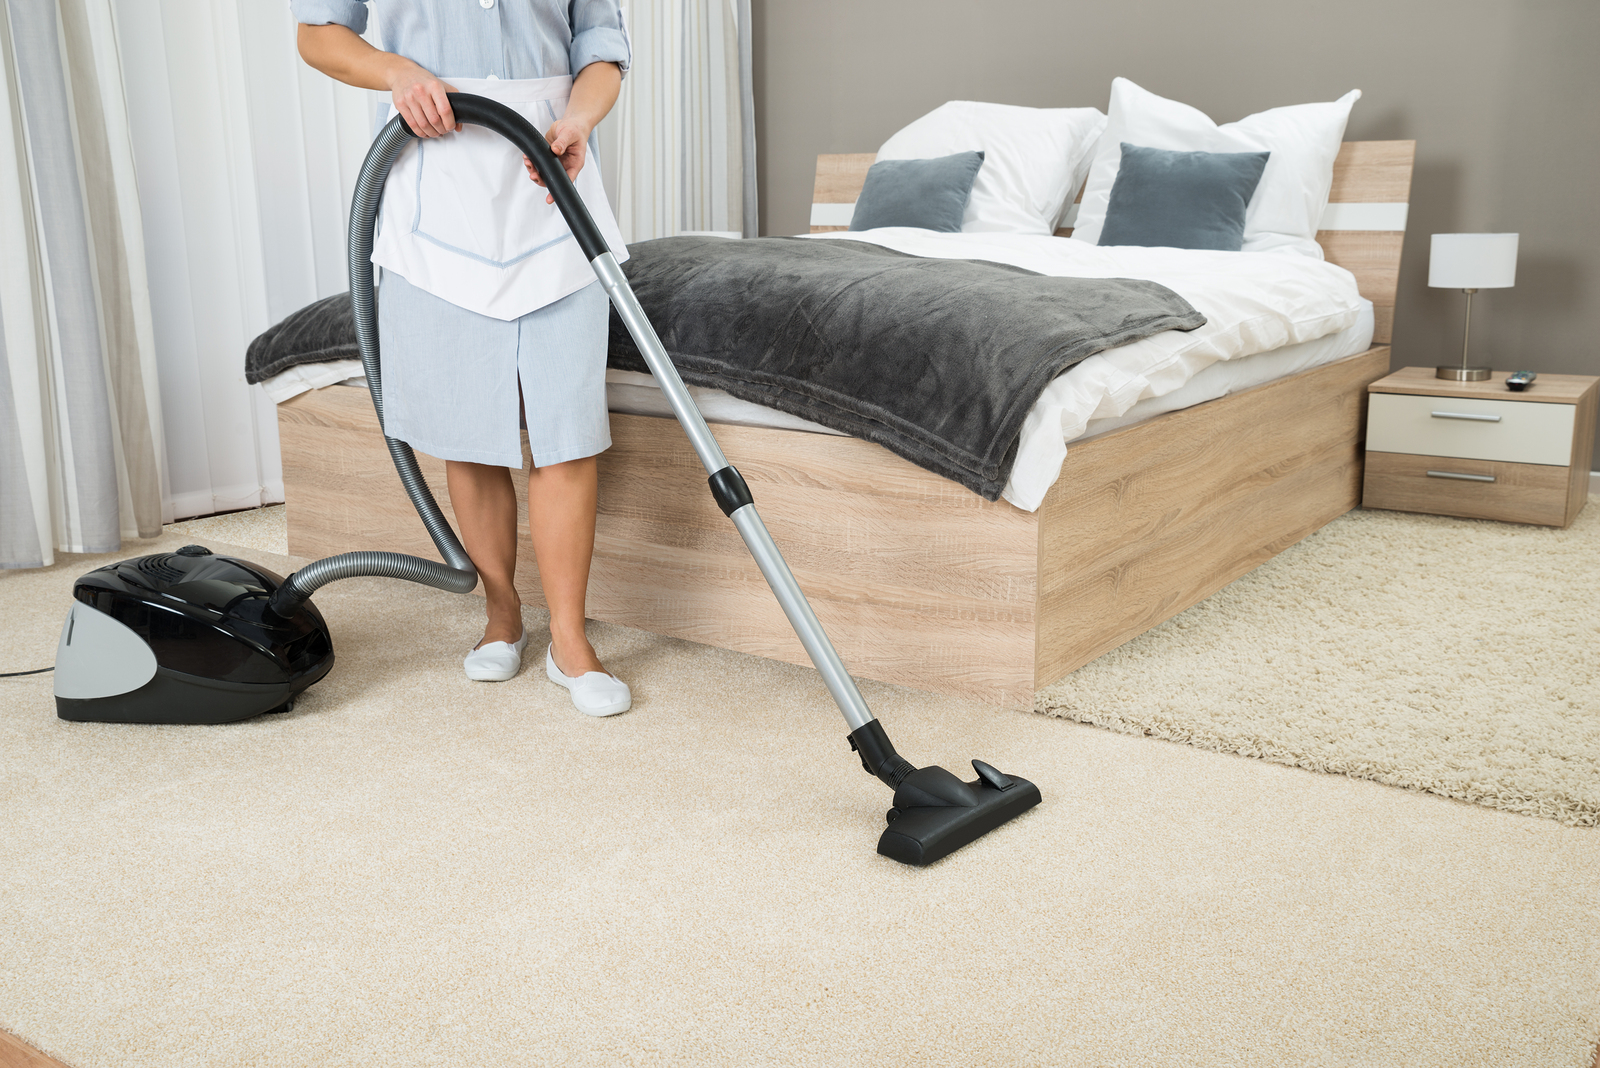 woman hoovering bedroom carpet